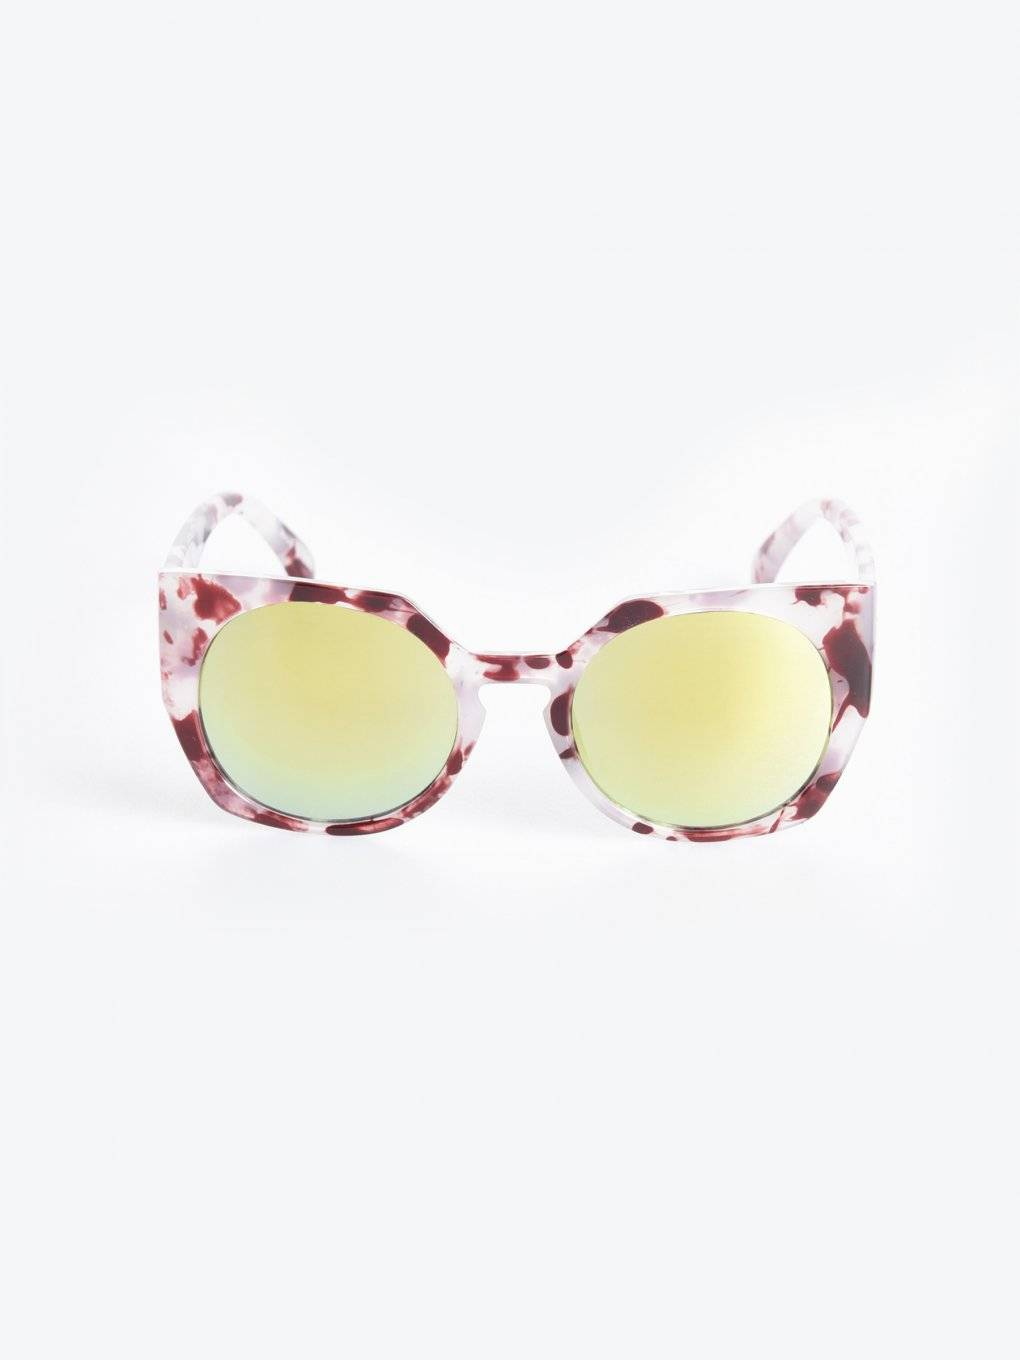 Cat eye sunglasses with mirror lenses